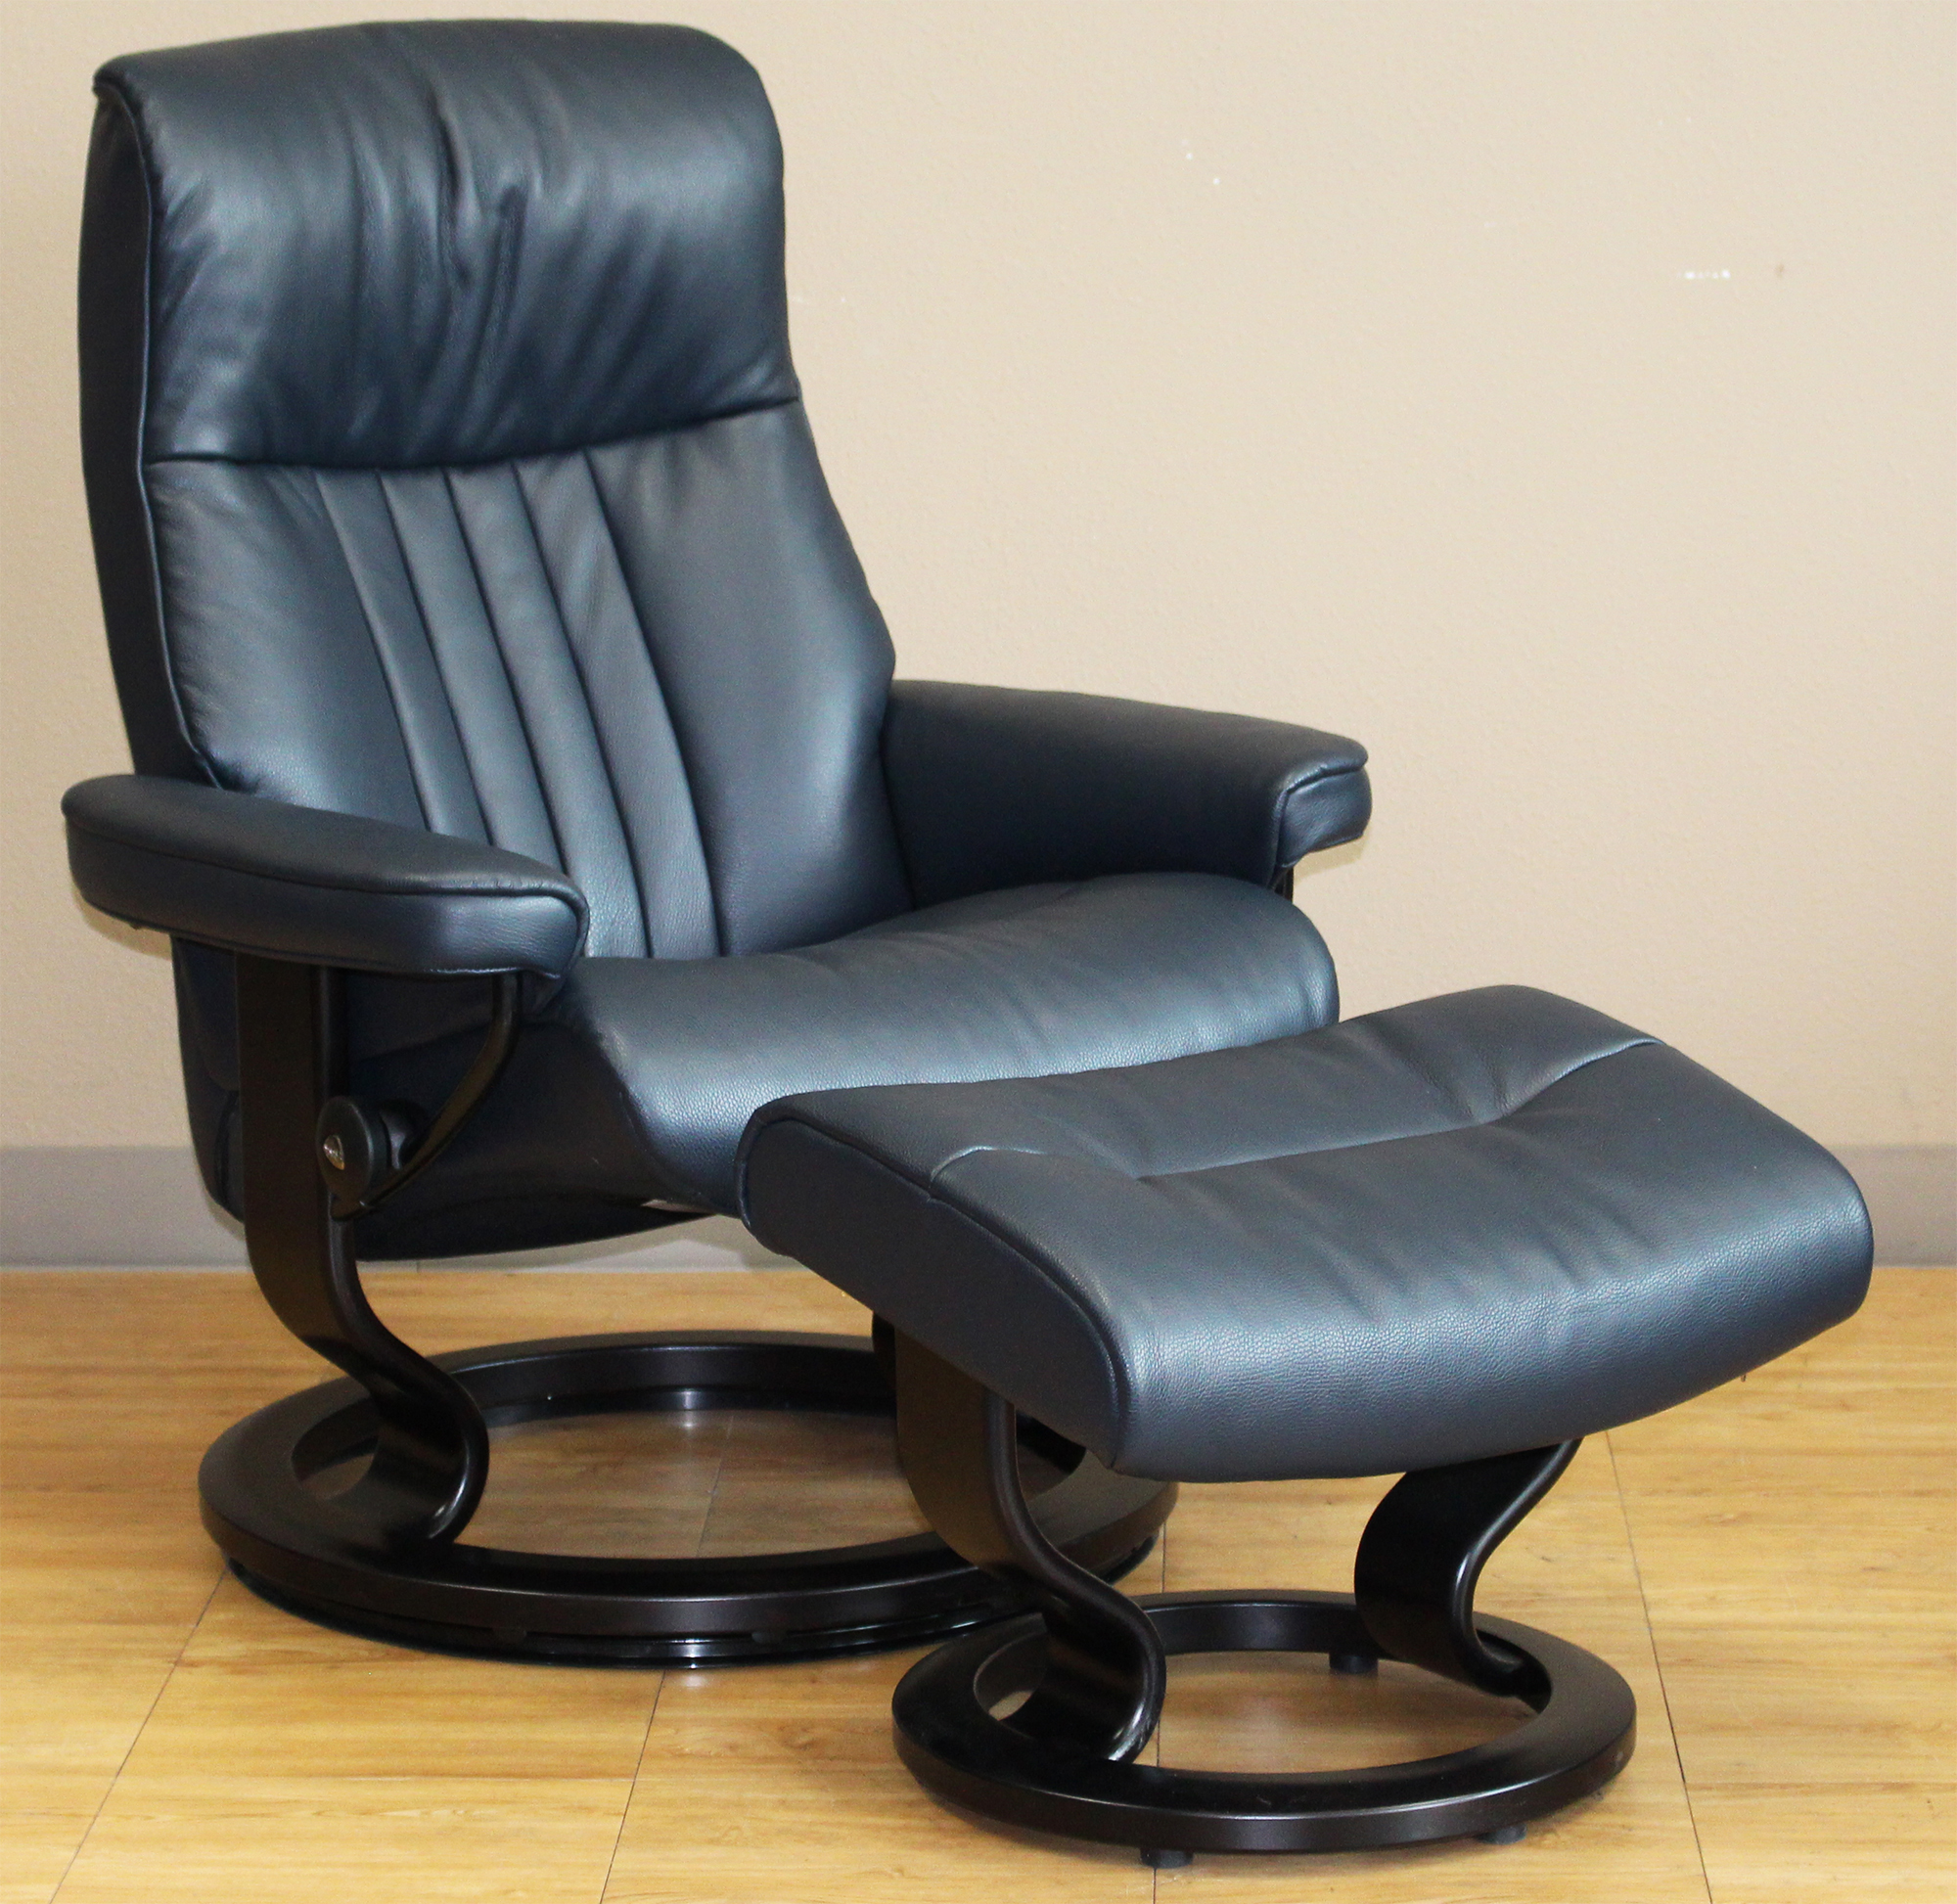 stressless crown cori blue leather recliner chair. Black Bedroom Furniture Sets. Home Design Ideas